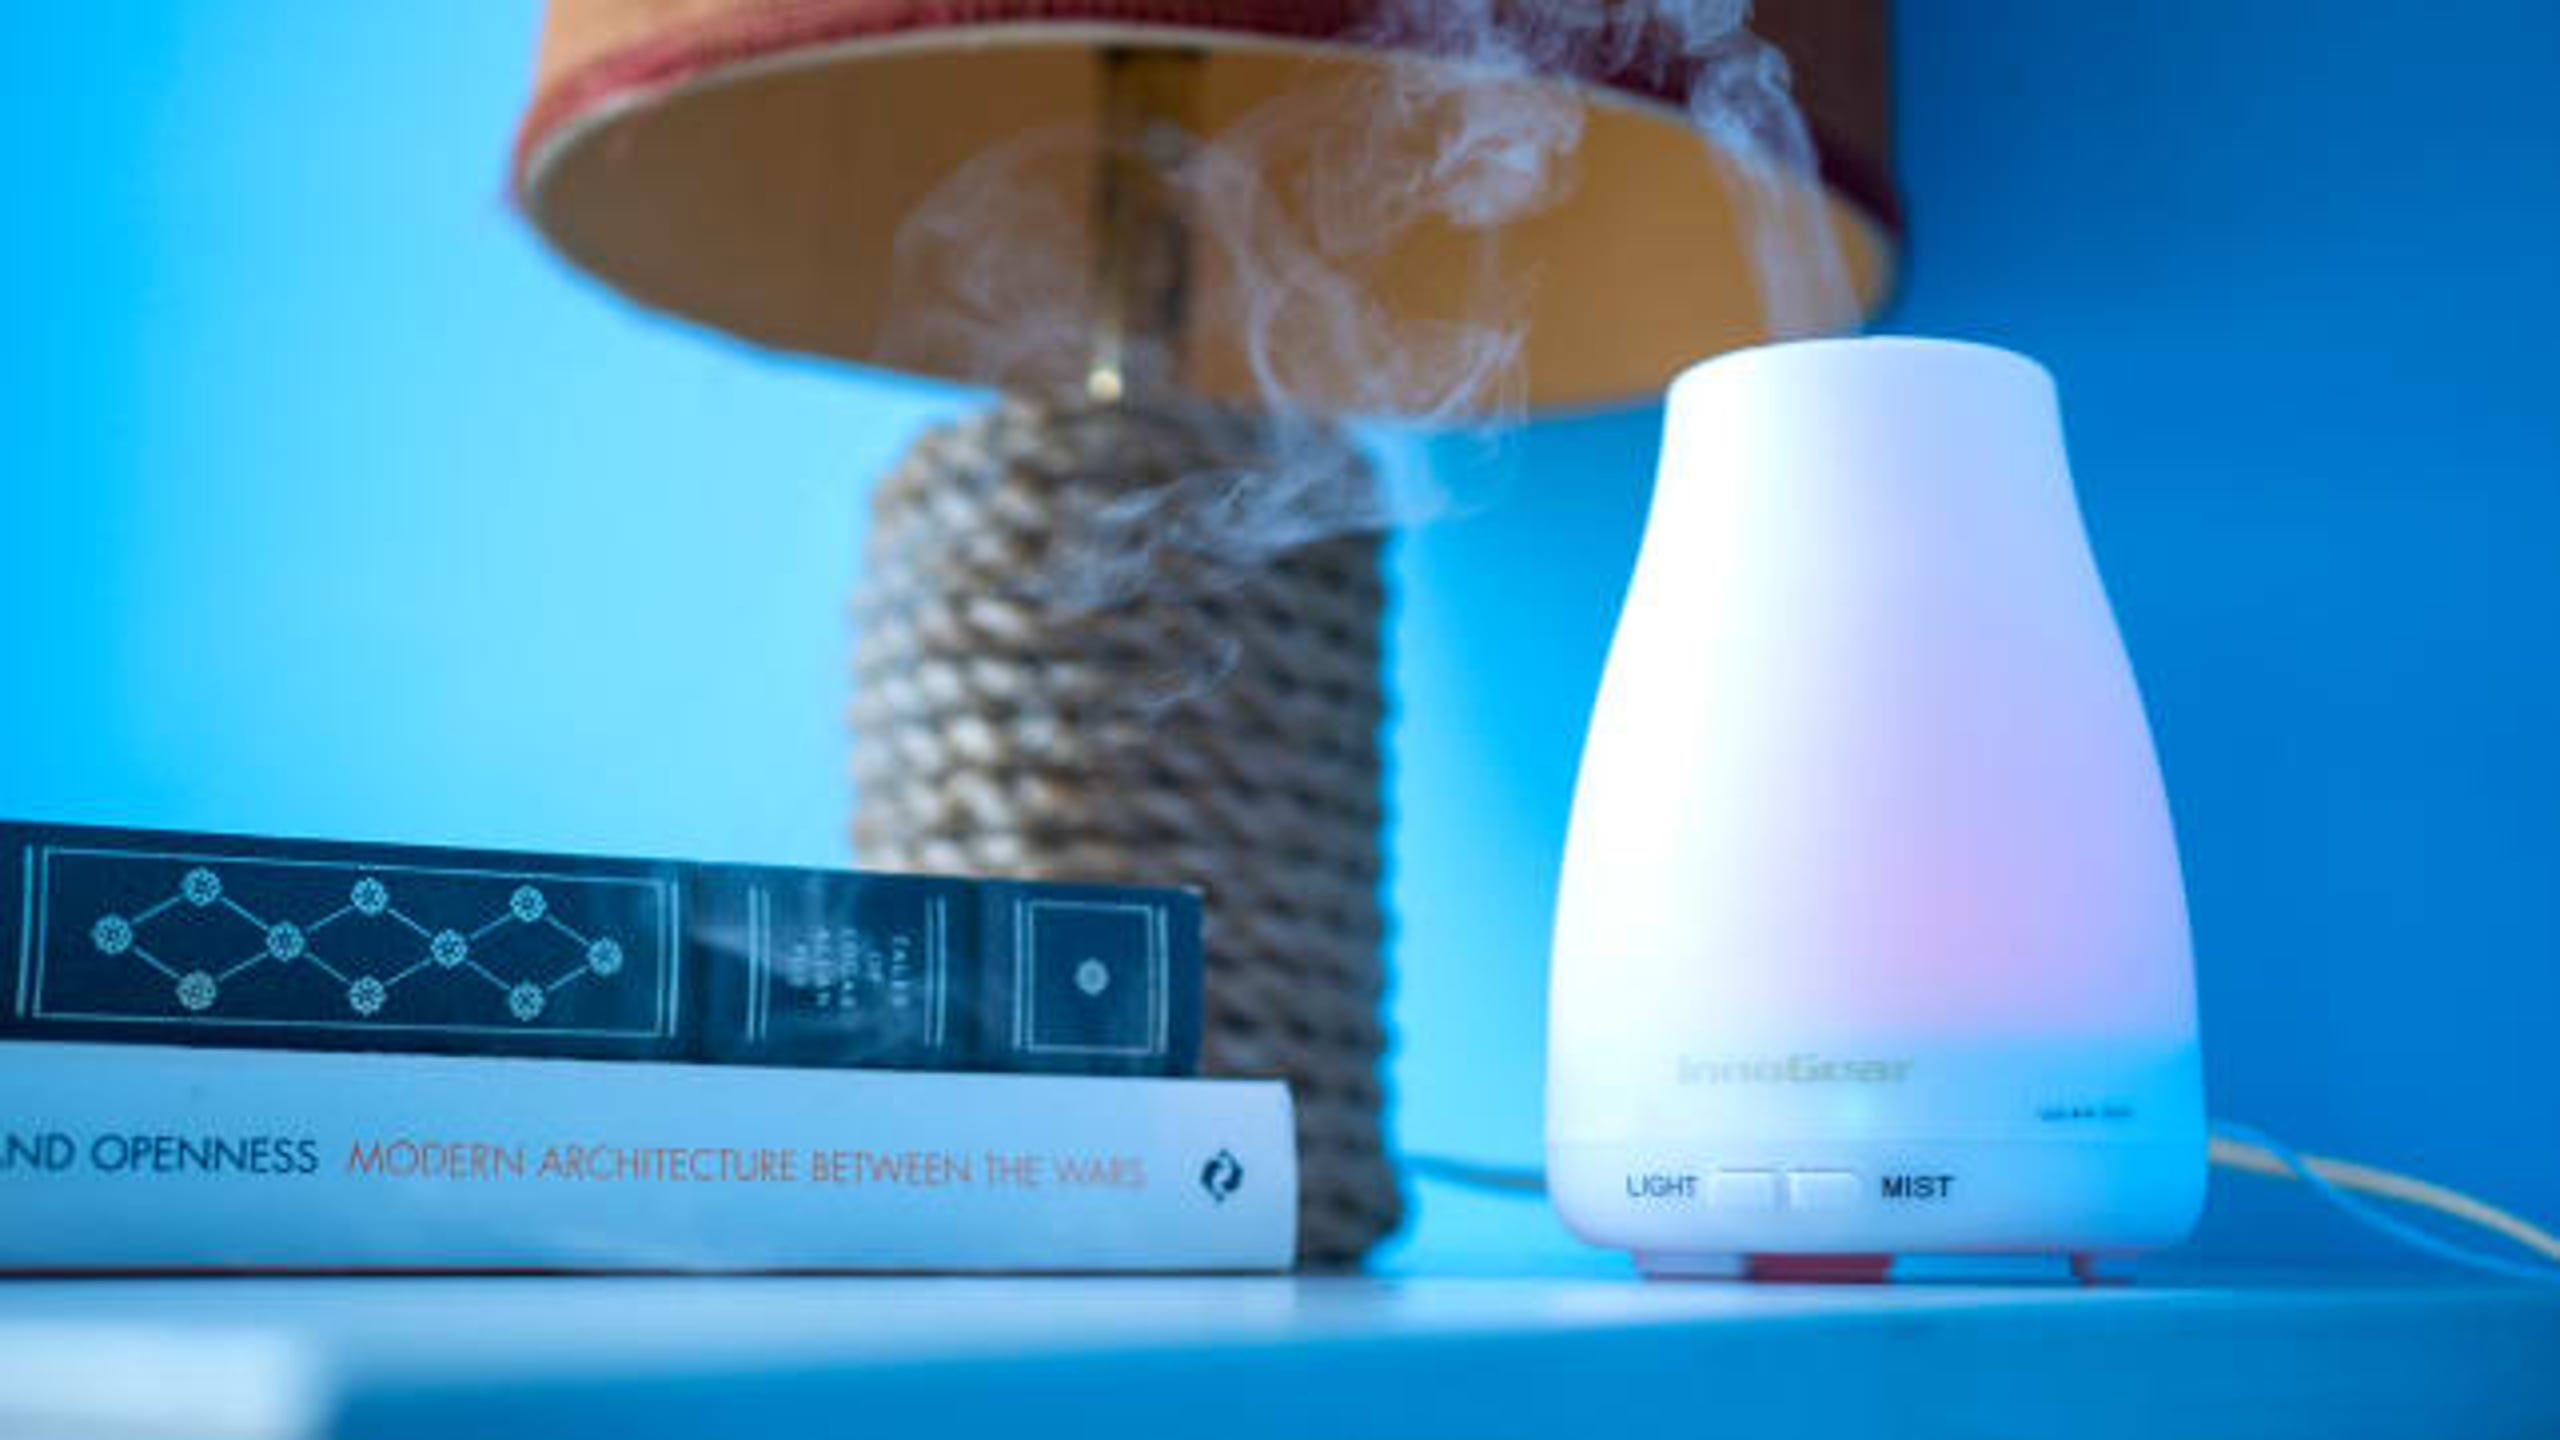 """Having a stuffed-up nose means you can't smell very much of anything, but a diffuser may be able to help with that. Not only do they add moisture to your room, but depending on the oil you choose, such as&nbsp;eucalyptus and lavender,&nbsp;they may help clear your sinuses or help you fall asleep. This one by InnoGear is&nbsp;<a href=""""https://www.reviewed.com/home-outdoors/best-right-now/the-best-essential-oil-diffusers?utm_source=usat&amp;utm_medium=referral&amp;utm_campaign=collab"""" target=""""_blank"""">the best essential oil diffuser</a>&nbsp;we tested because of its large water reservoir, different mist settings, and color-changing lights. (<strong><a href=""""https://www.amazon.com/InnoGear-Aromatherapy-Essential-Ultrasonic-Humidifier/dp/B00V9JP8EE/ref=as_li_ss_tl?ie=UTF8&amp;linkCode=ll1&amp;tag=usatgallery-20&amp;linkId=8276953faf6141b891250817f3a3f20e&amp;language=en_US"""" target=""""_blank"""">$14.98 on Amazon</a></strong>)"""